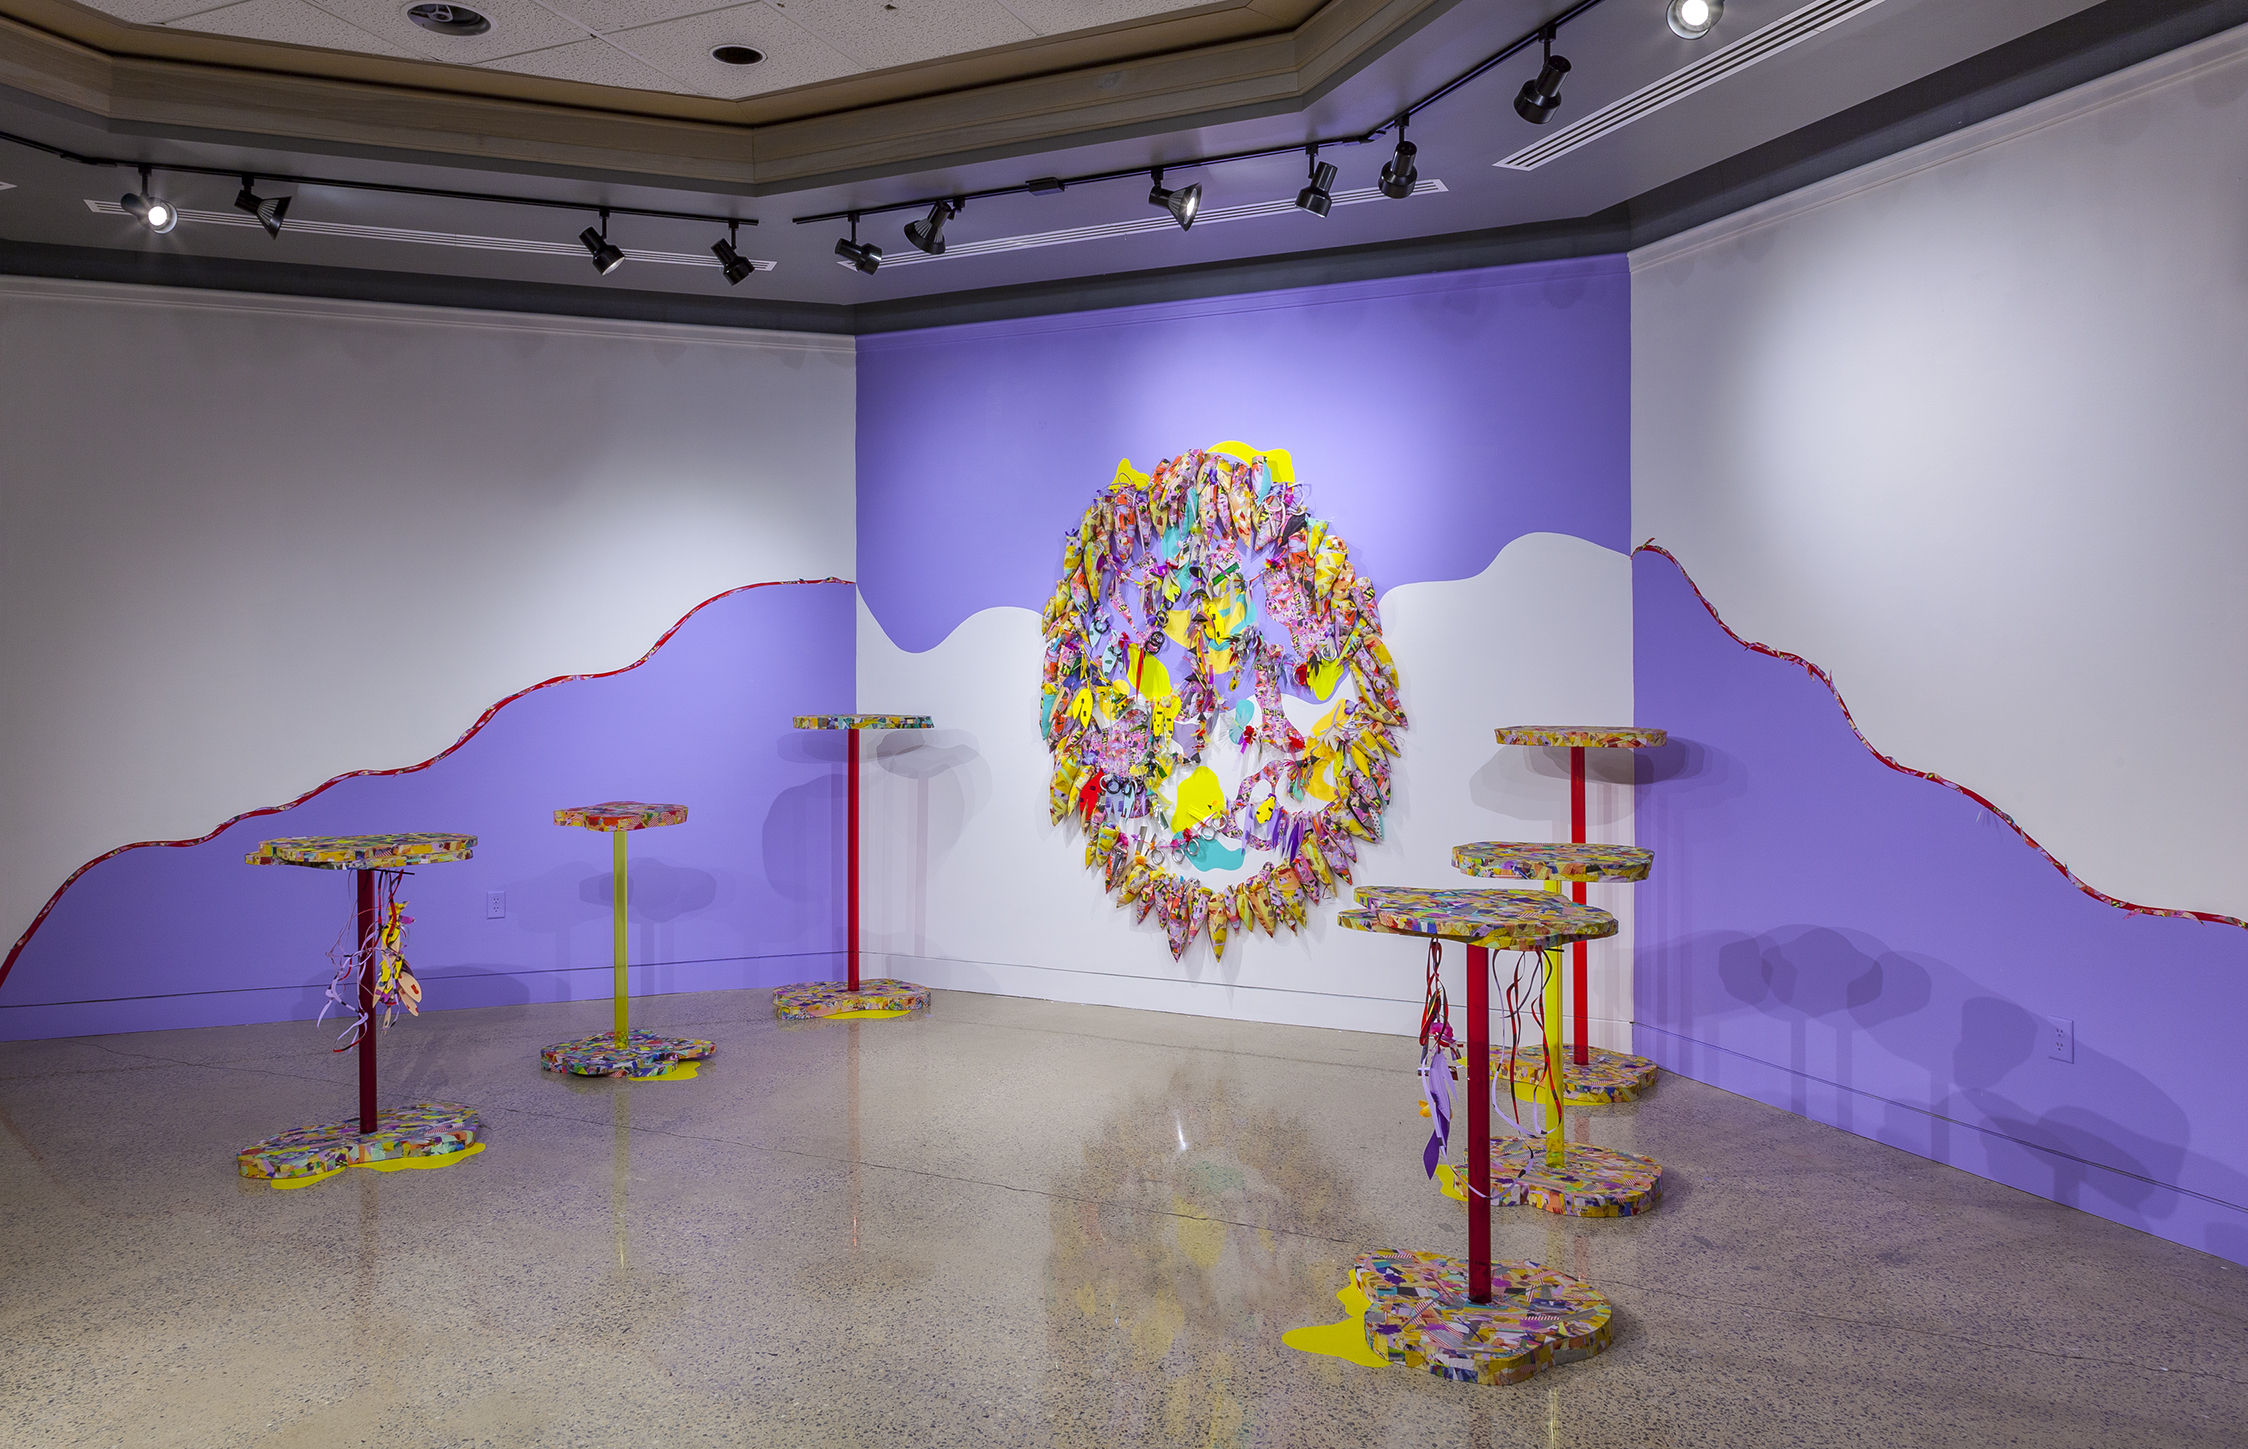 Above and below: Amy Boone-McCreesh. Depictions of Power. 2017. custom fabric, vinyl, mixed media garlands Pillars: Acrylic, foam, custom fabric, mixed media garlands, floor vinyl 7' h x 13' w x 10.5' d Pillars range from 3.3' to 4.5'